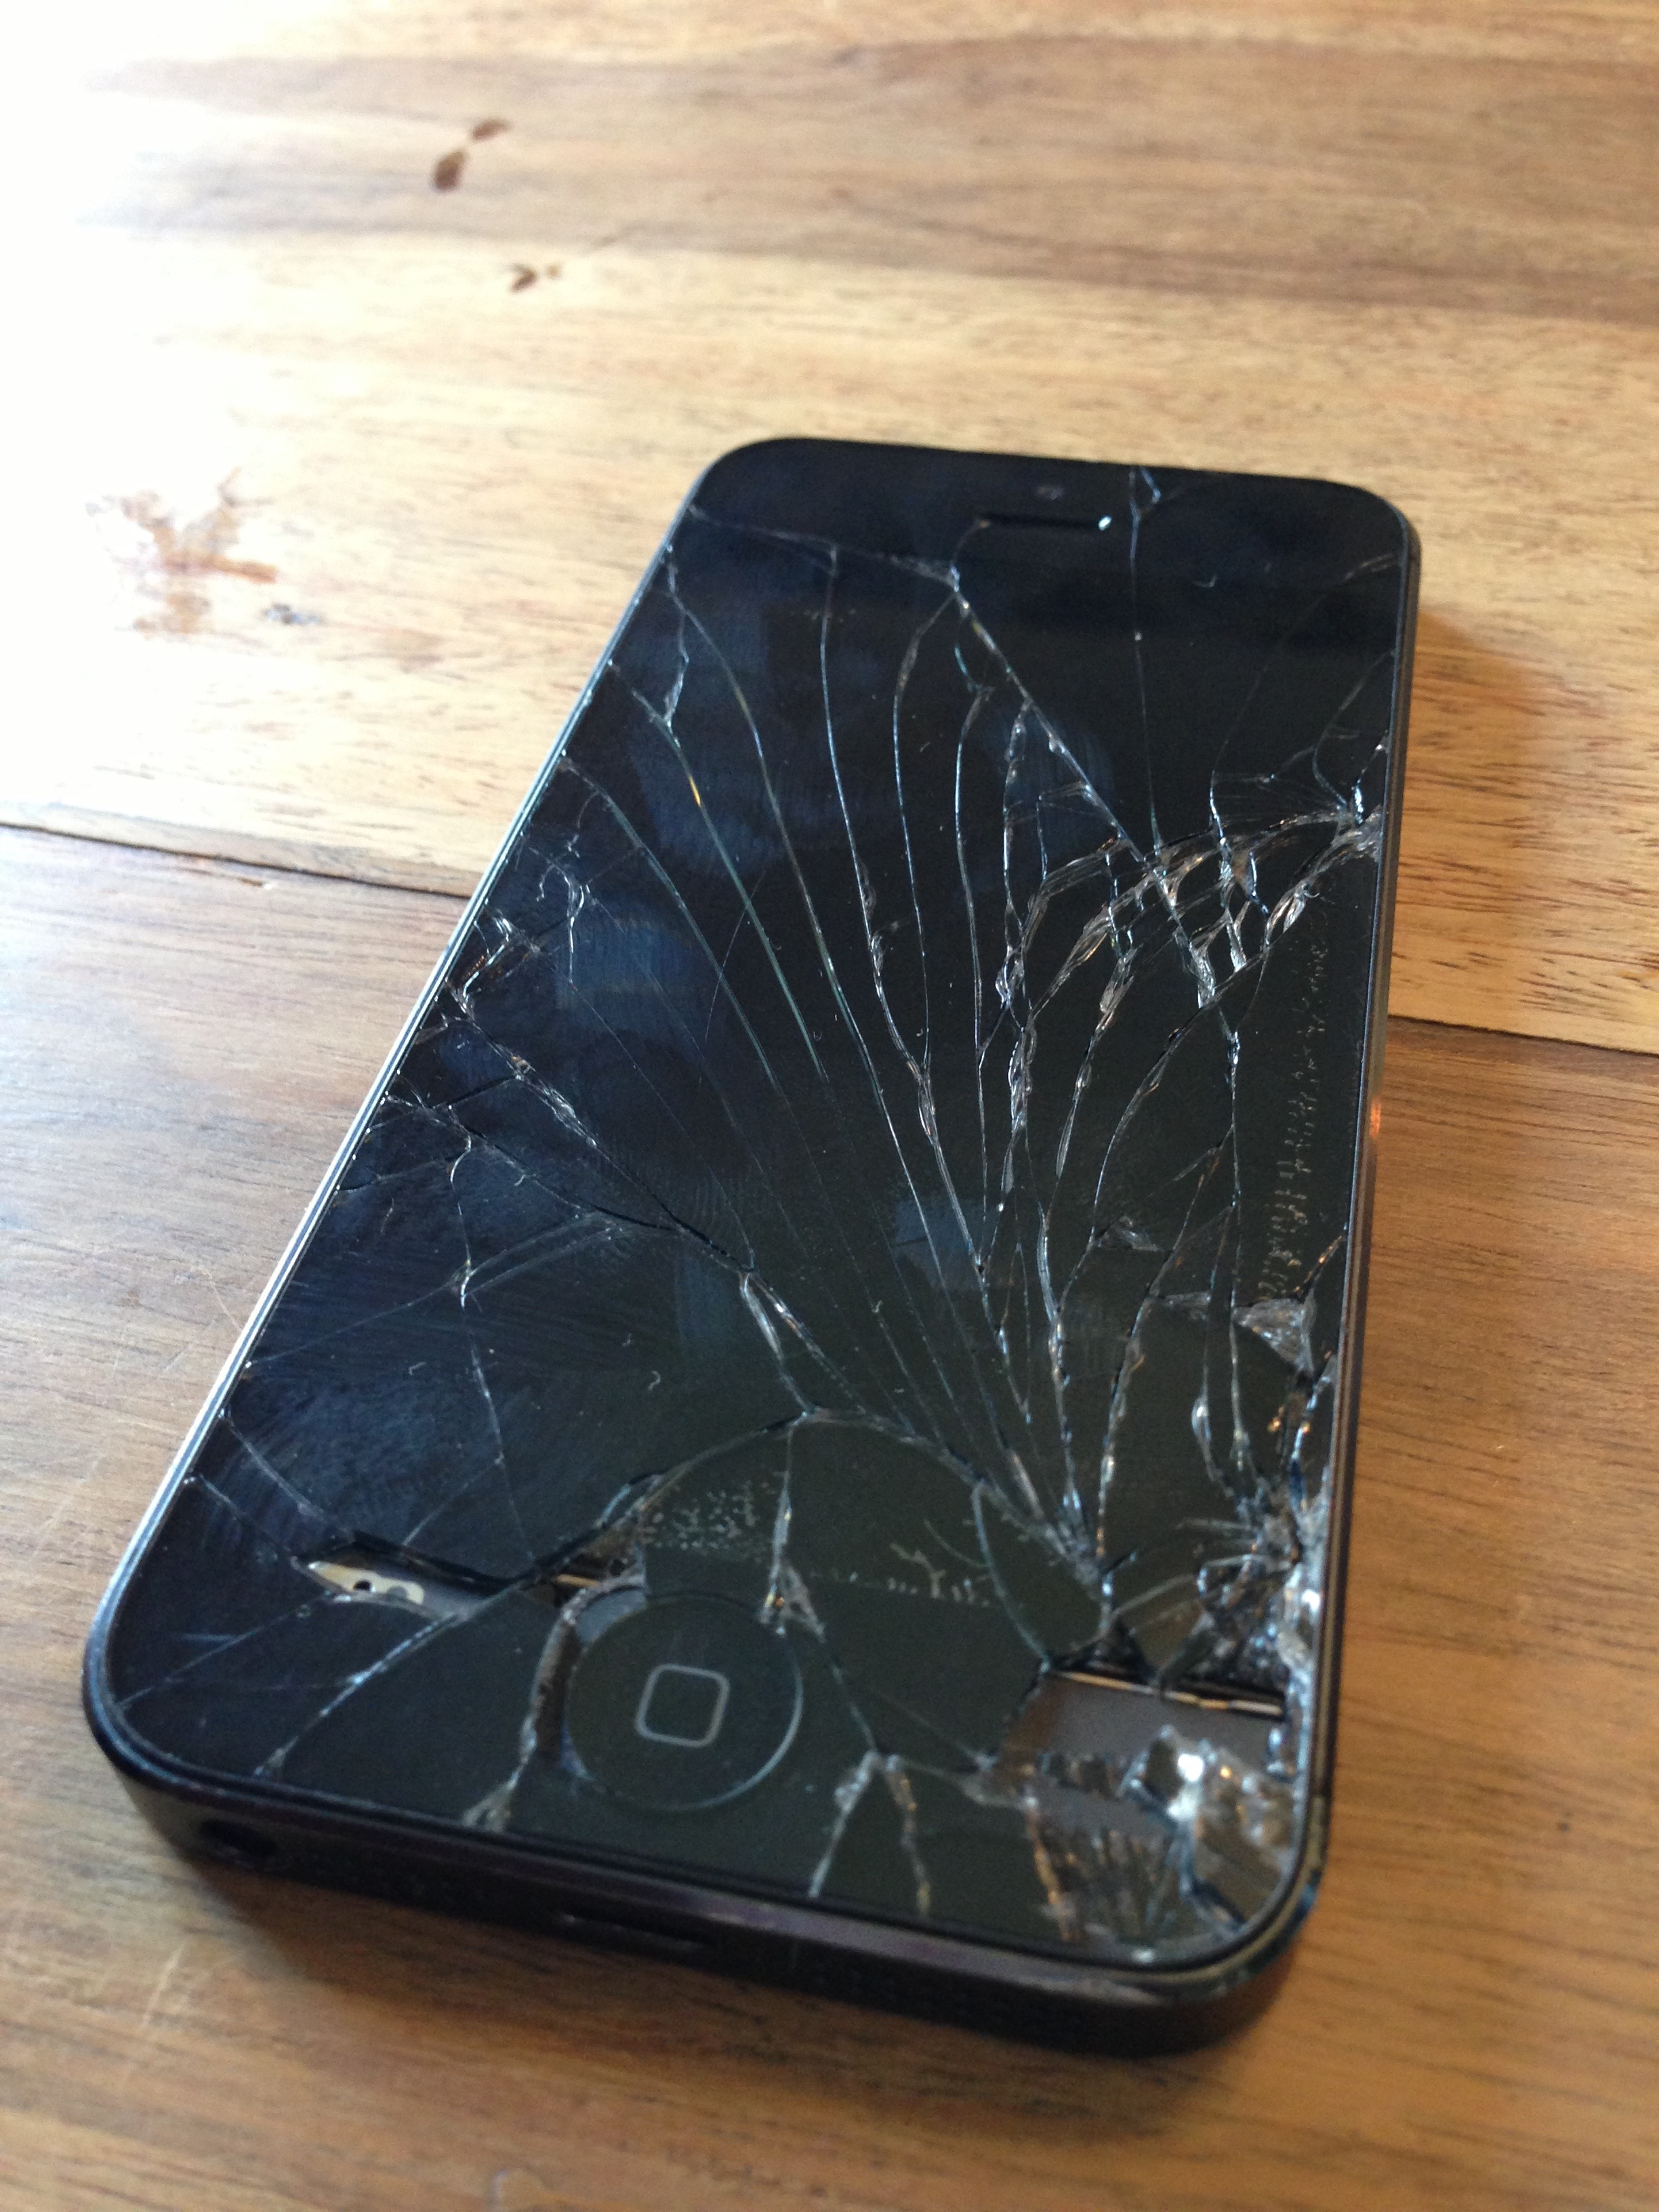 Where Can I Fix My Broken iPhone in Dubai?